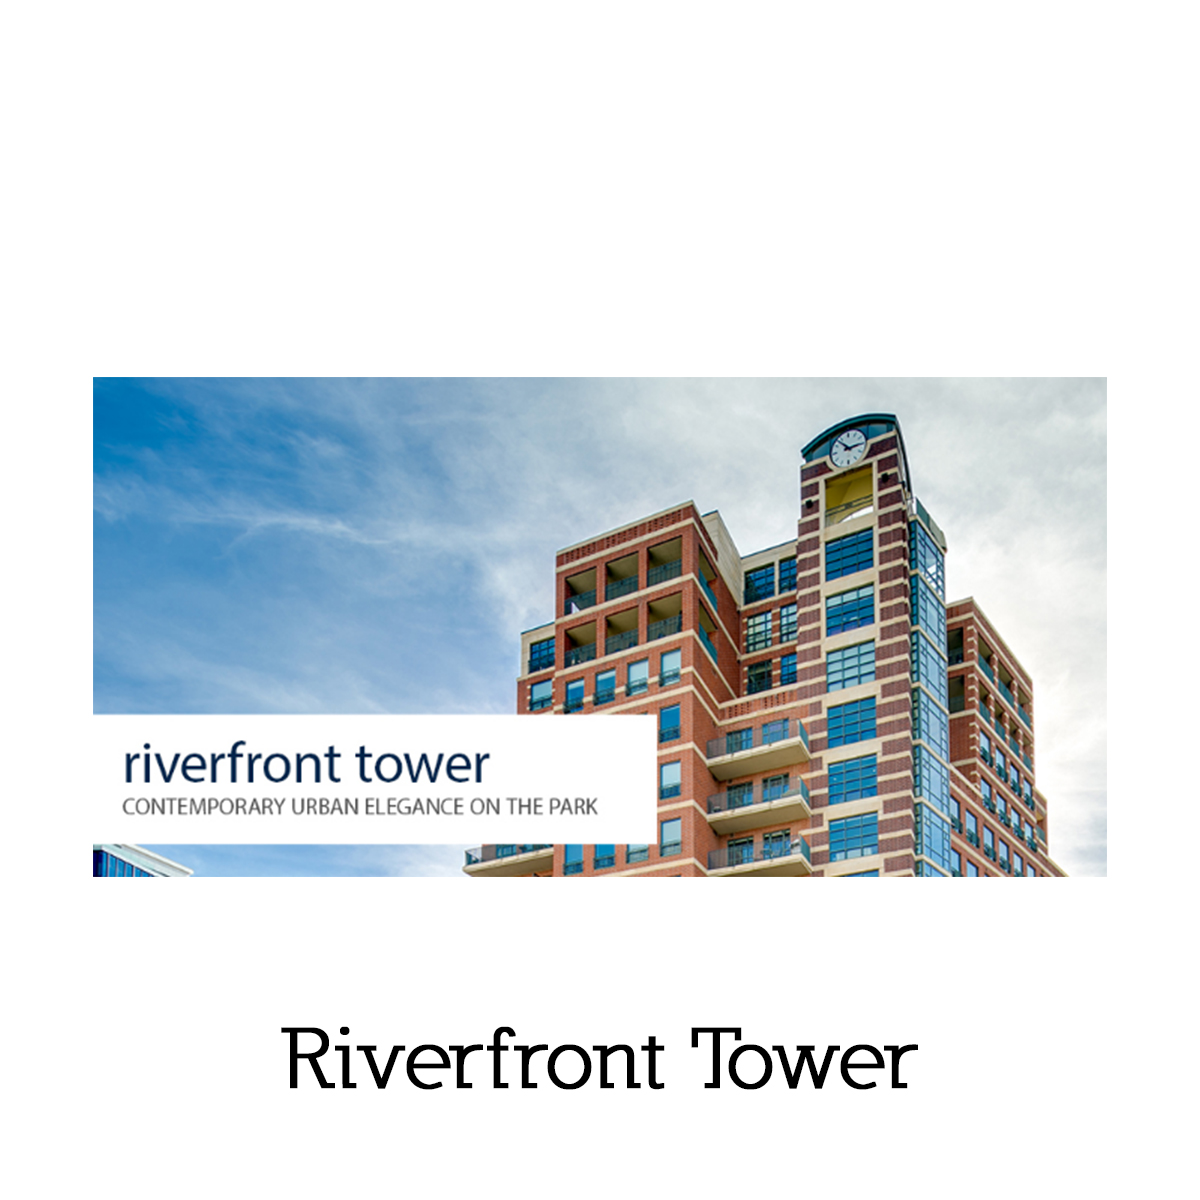 riverfront-tower_resized-for-web.jpg